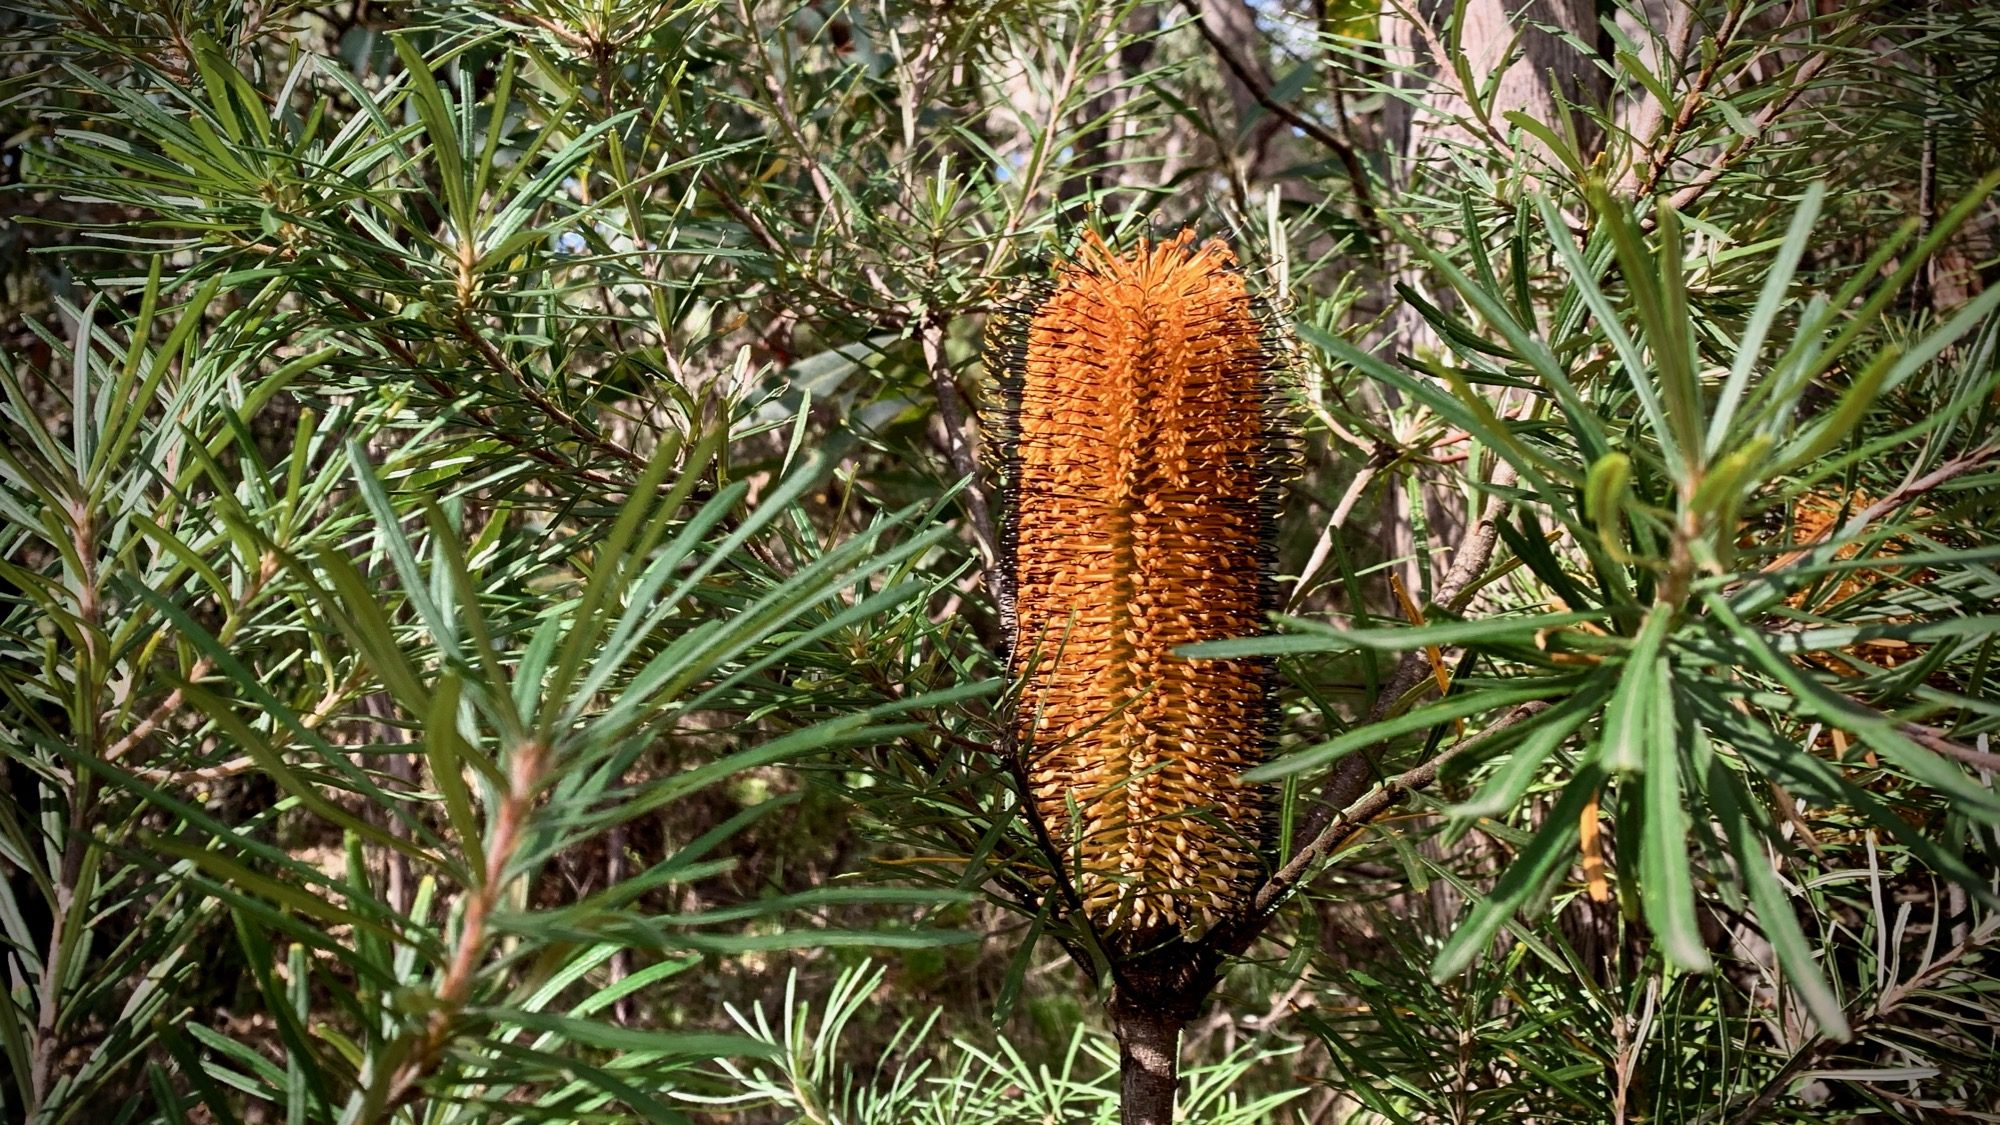 Banksia at Bunjaree